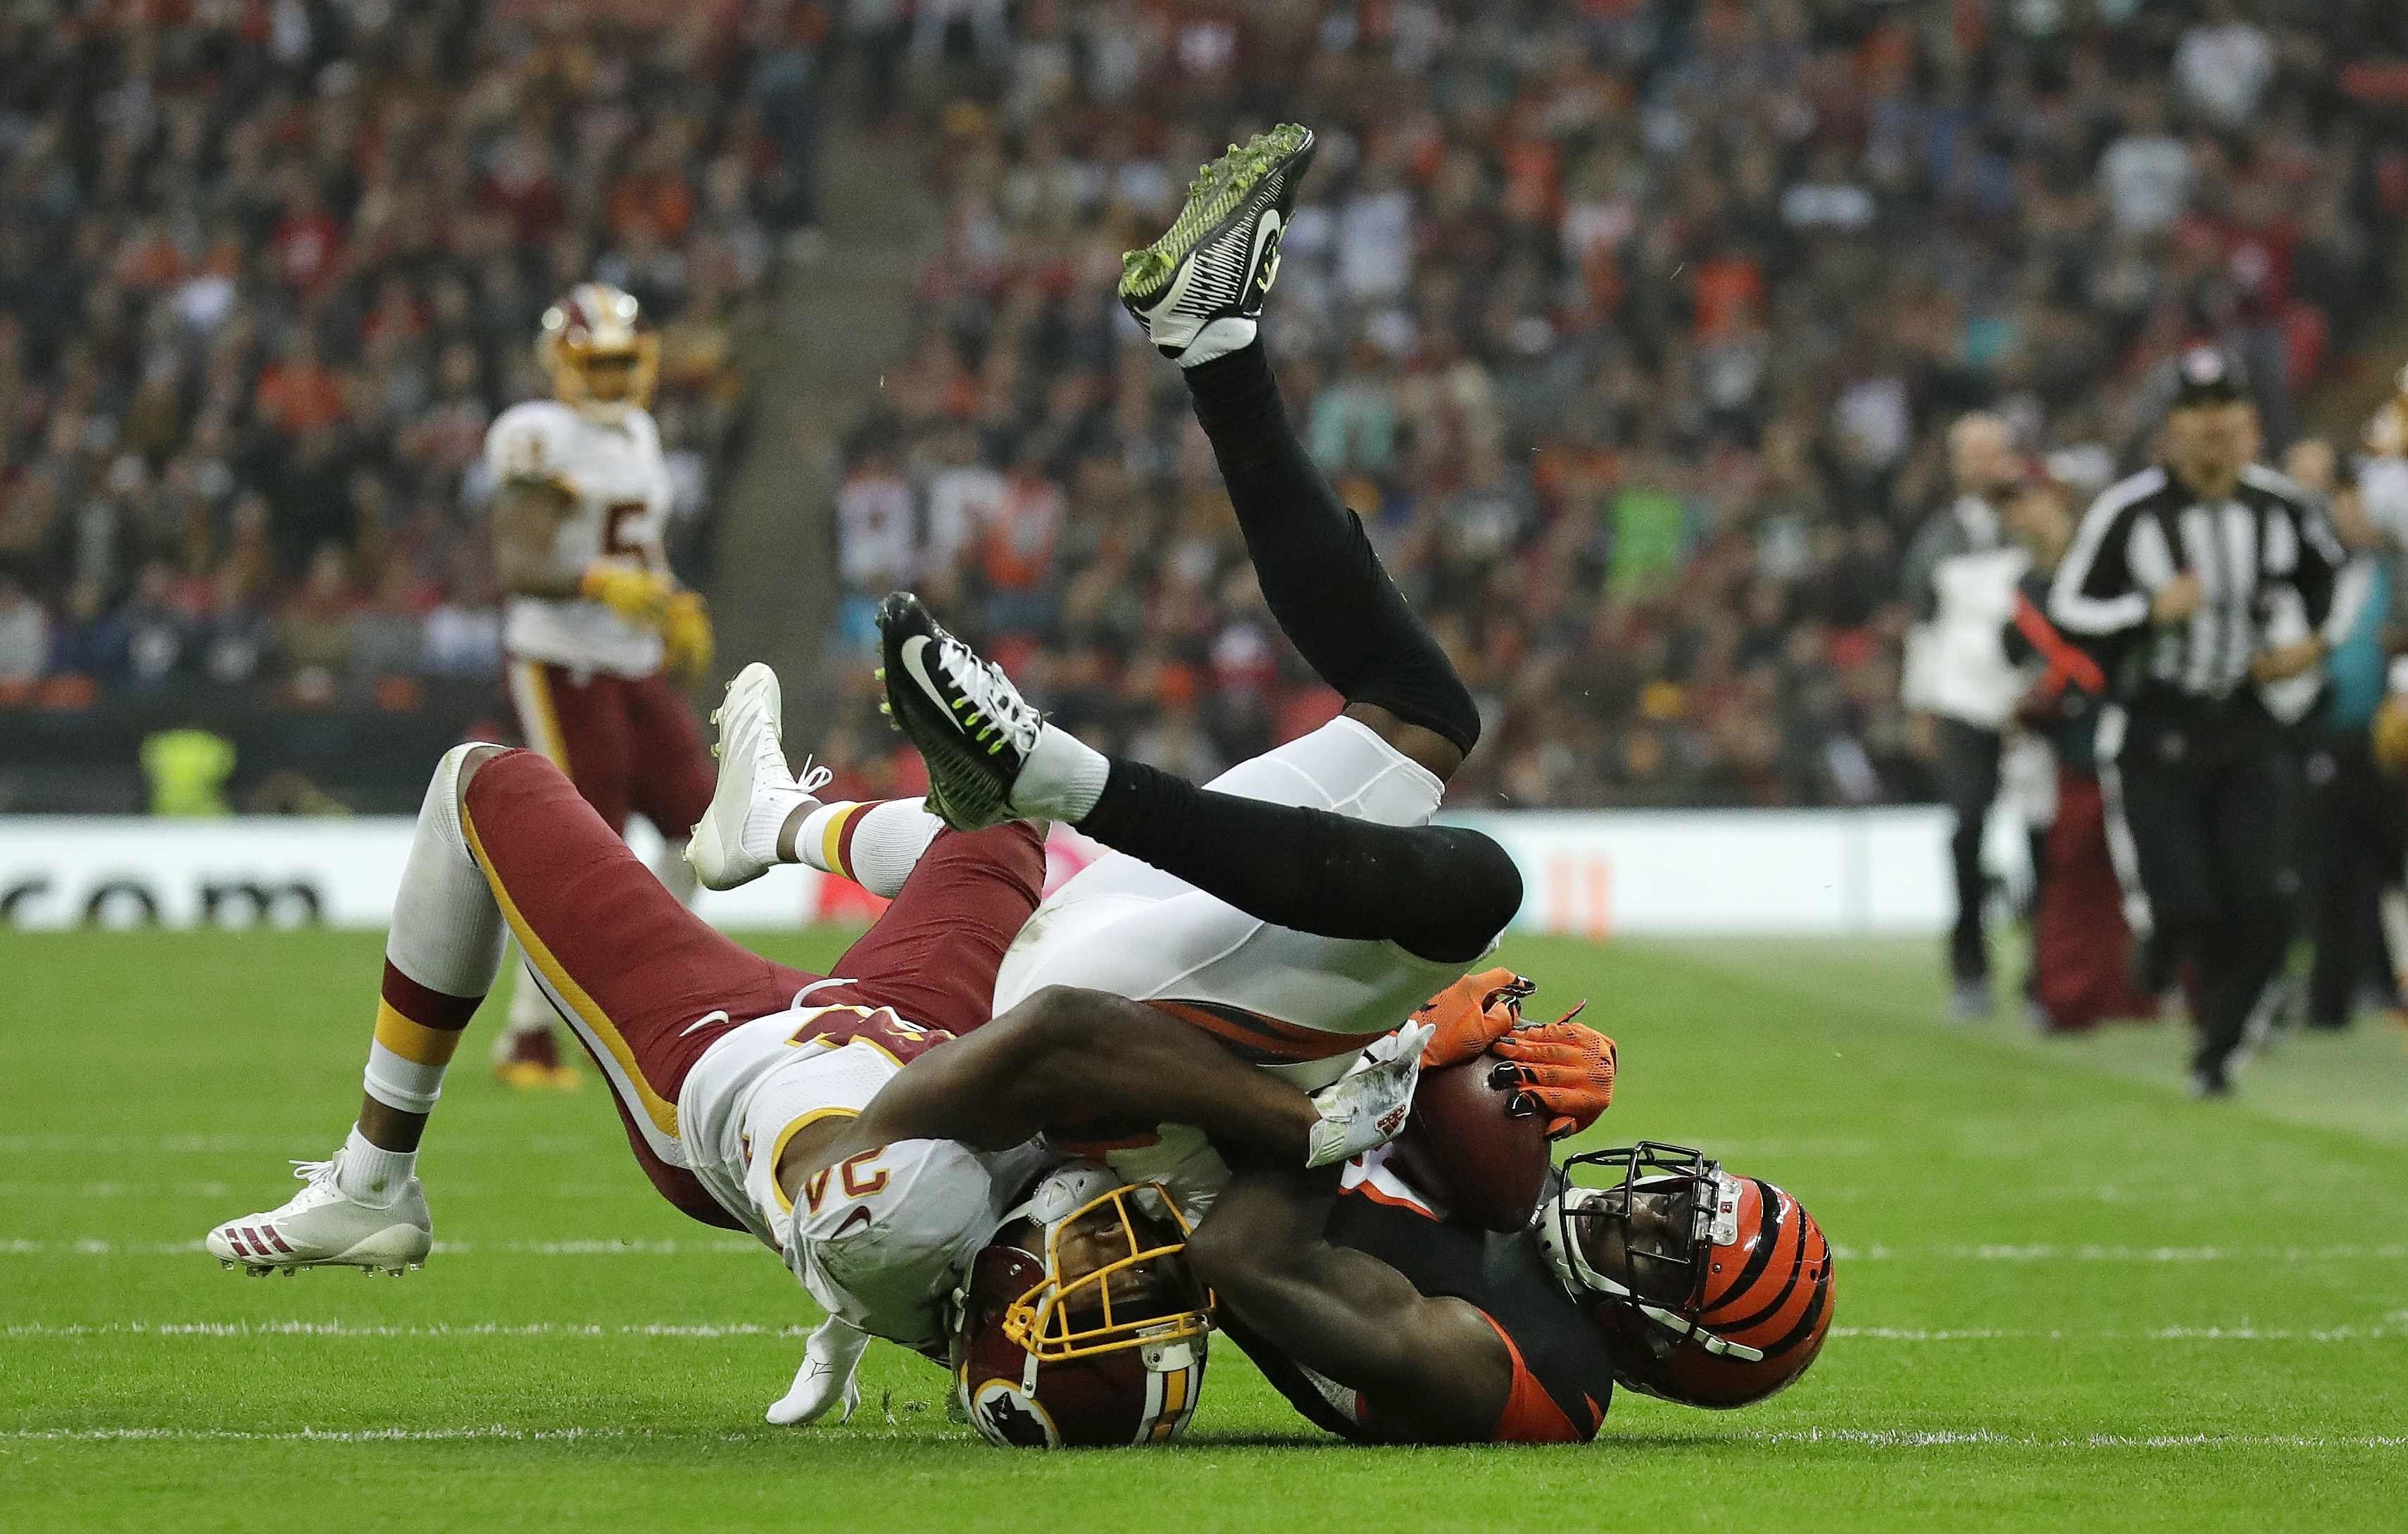 Cincinnati Bengals wide receiver A.J. Green (18), right, takes a catch despite the challenge of Washington Redskins cornerback Josh Norman (24) during an NFL Football game at Wembley Stadium in London, Sunday Oct. 30, 2016. (AP Photo/Matt Dunham)